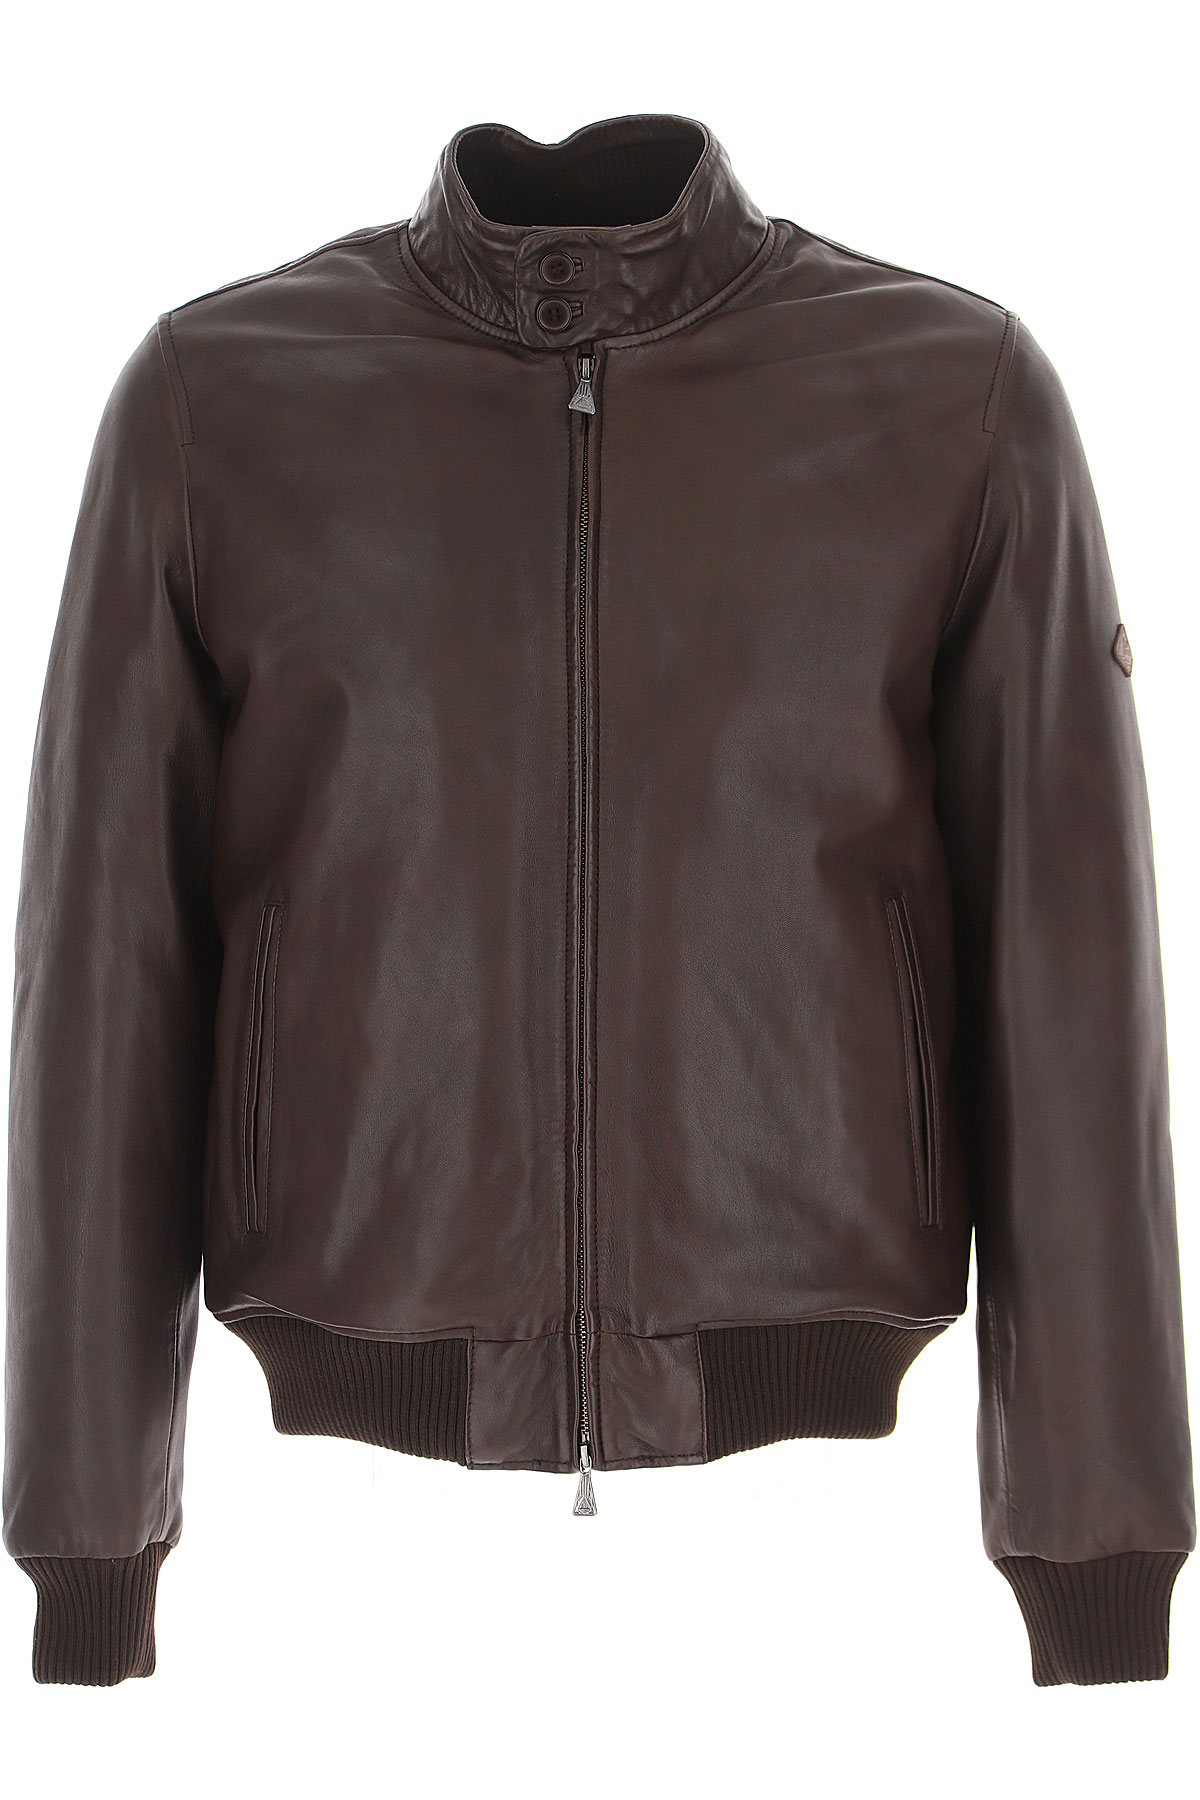 Roy Rogers Leather Jacket for Men On Sale, Dark Brown, Leather, 2019, L M XL XXL